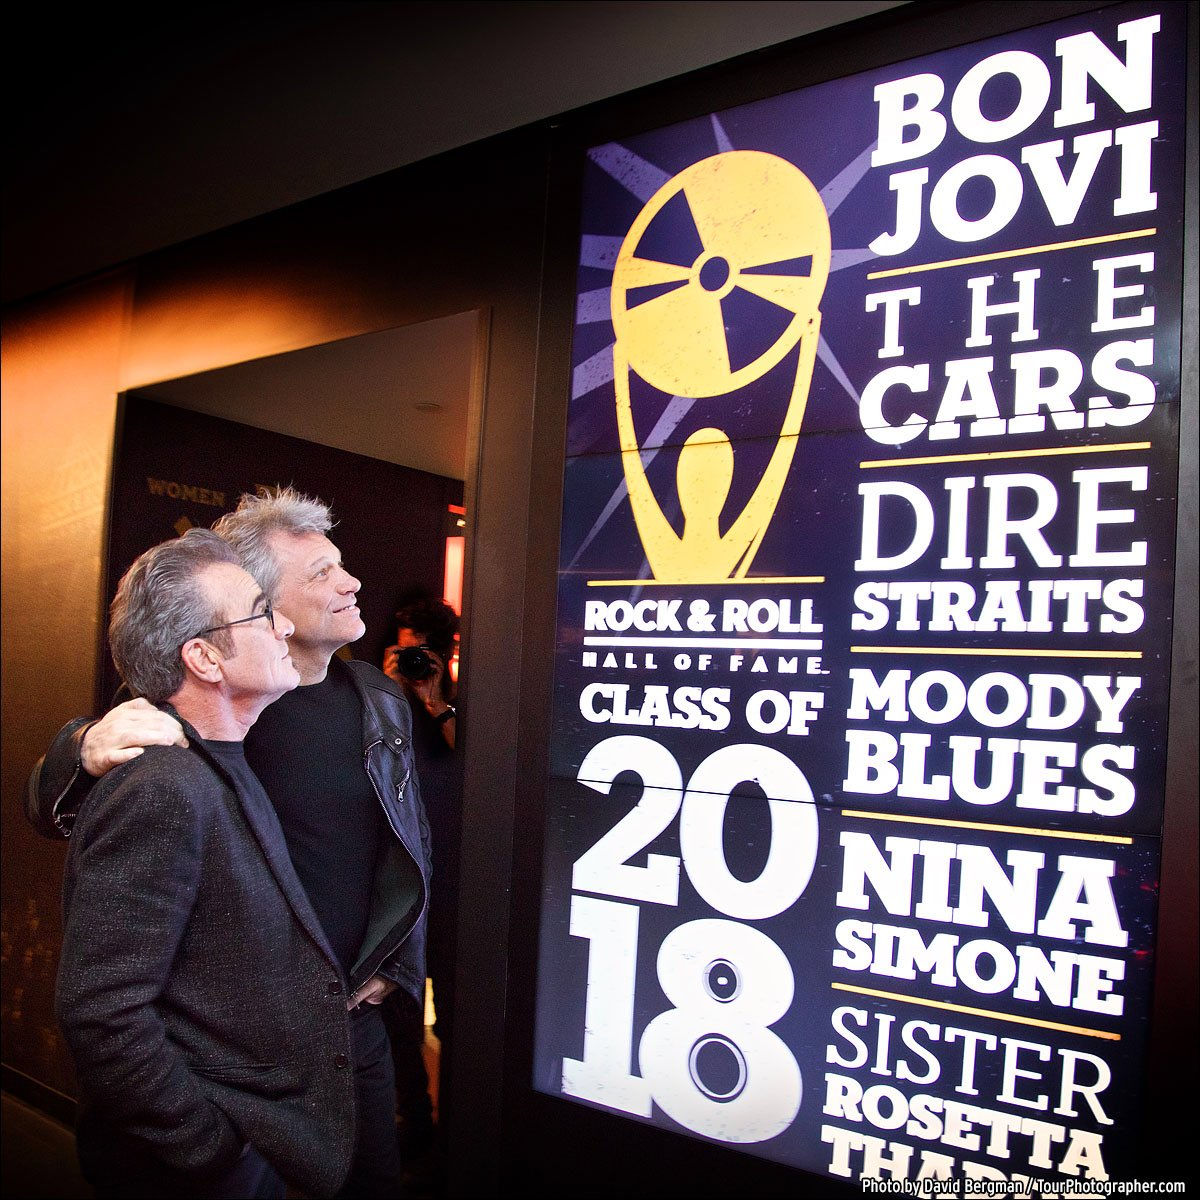 #BonJoviRockHall https://t.co/NprYaxWSaG